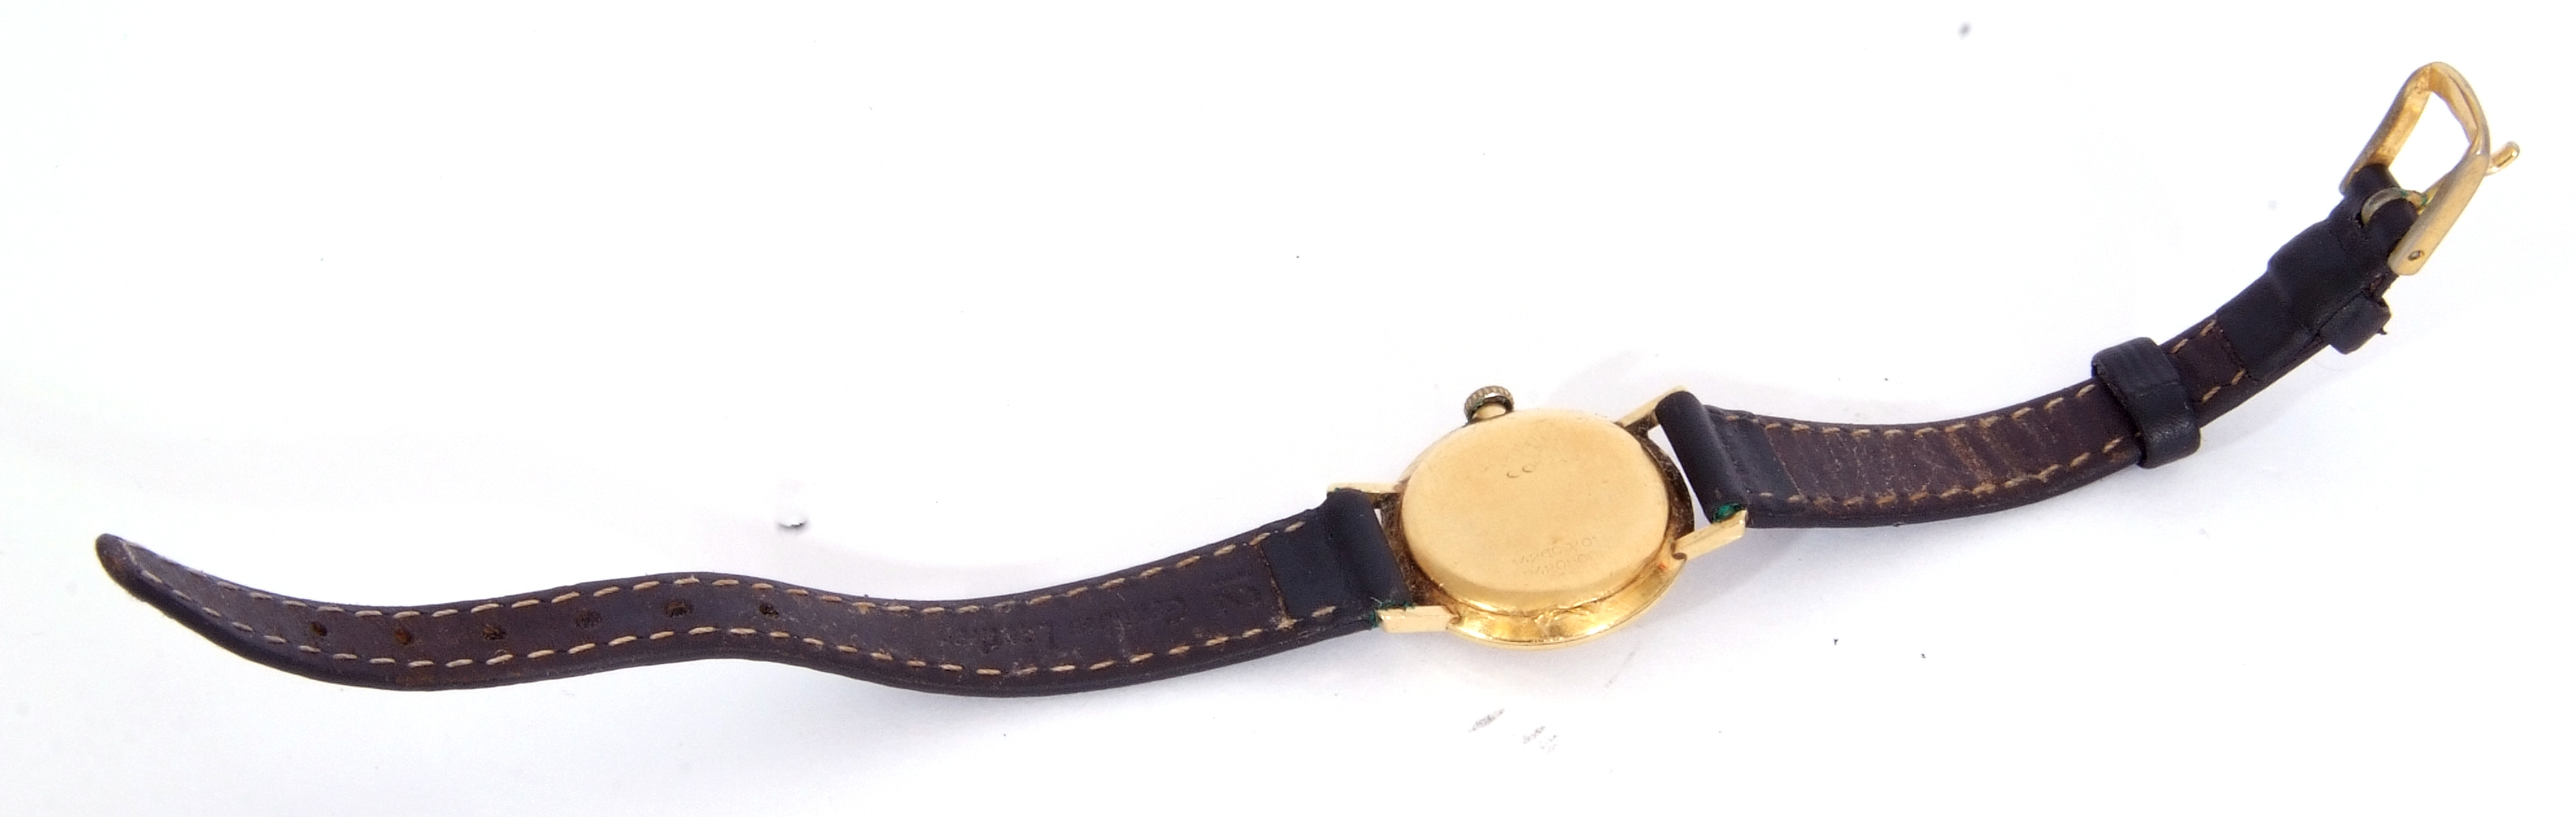 First quarter of 20th century ladies wrist watch, the round dial with black painted Roman - Image 4 of 6